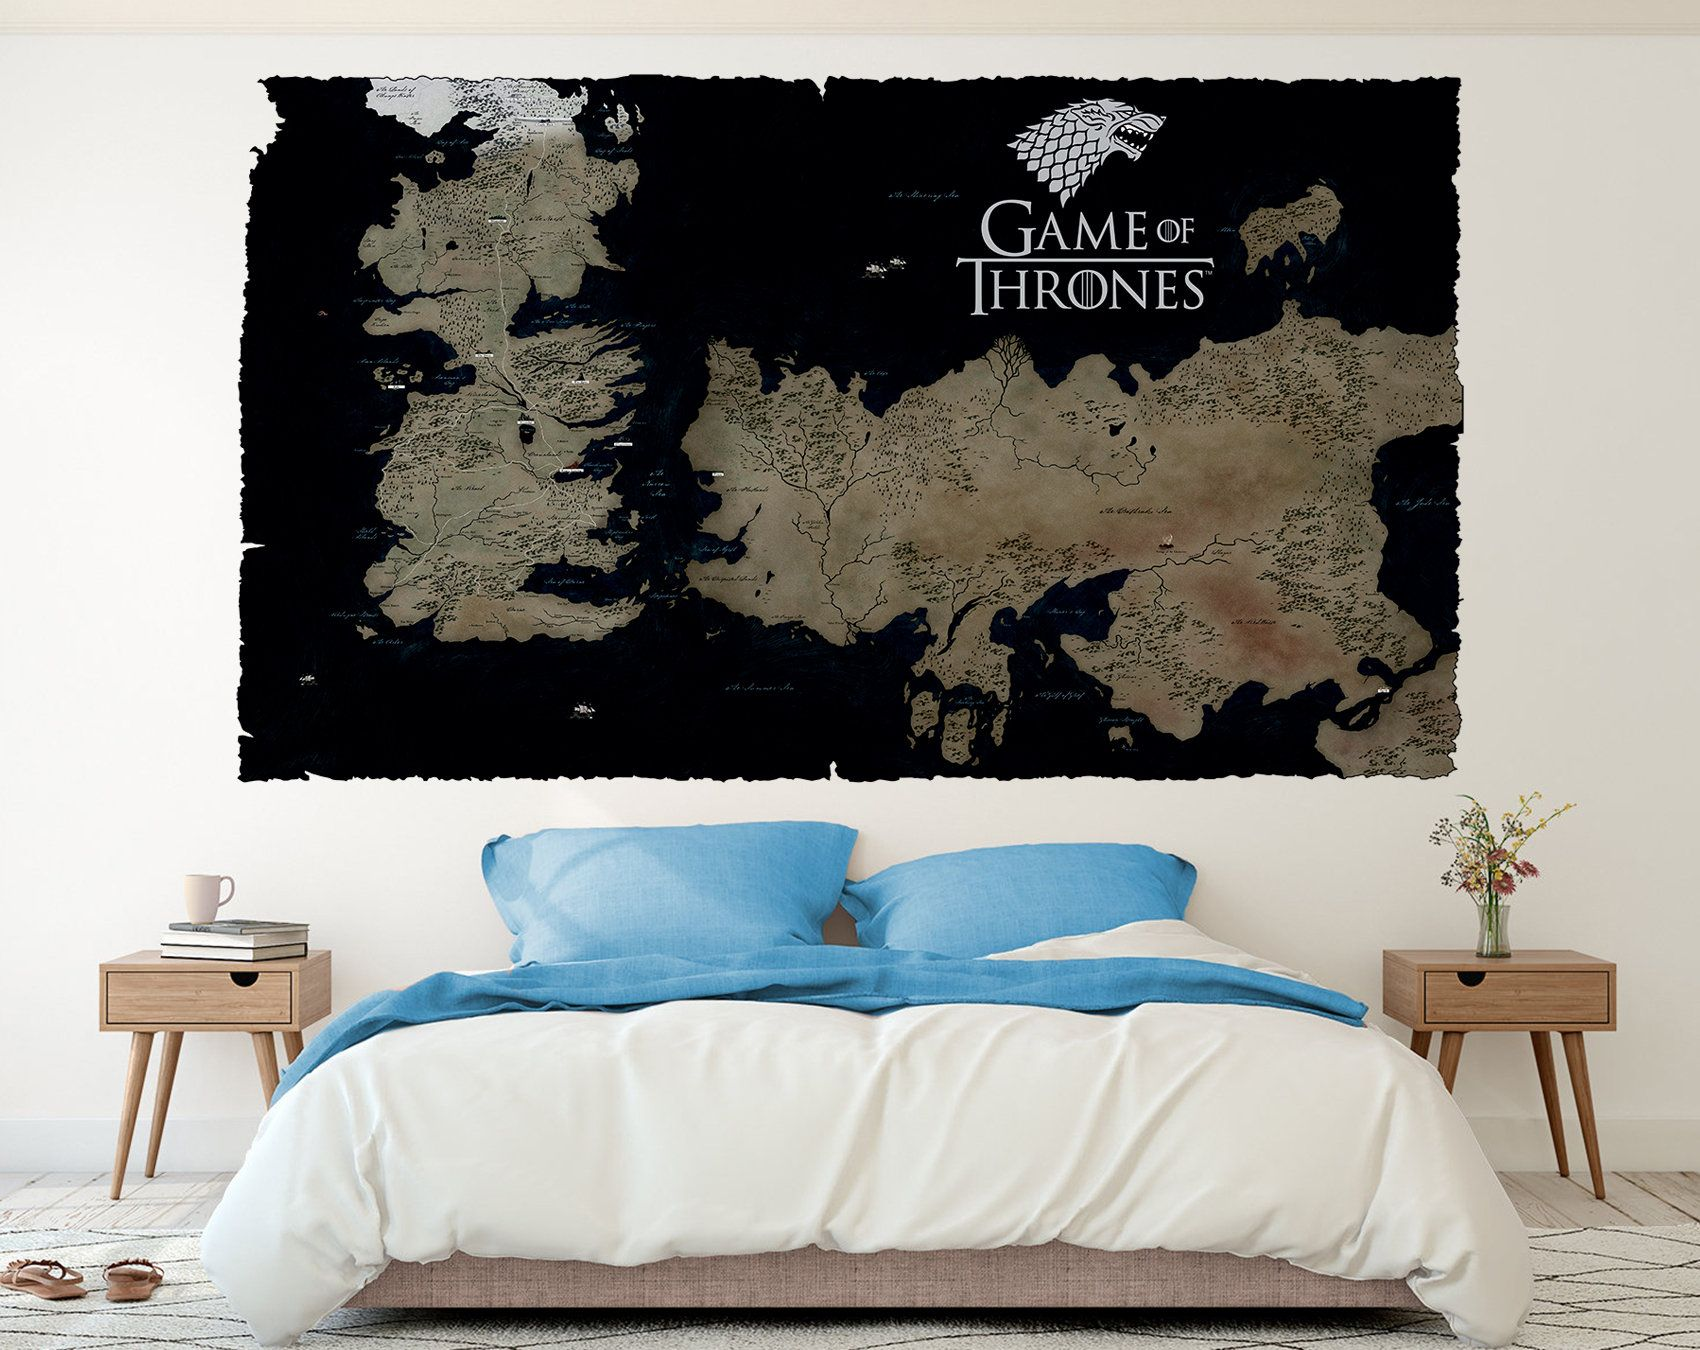 Game Of Thrones Map Wall decal Westeros and Essos Game of ... Game Of Thrones Map Wall on game of thrones review, game of thrones posters, game of thrones book, game of thrones winter, game of thrones diagram, game of thrones kit, game of thrones wildlings, game of thrones globe, game of thrones magazine, game of thrones win or die, game of thrones maps hbo, game of thrones garden, game of thrones war, game of thrones pins, game of thrones maps pdf, game of thrones castles, game of thrones hardcover, game of thrones white walkers, game of thrones table, game of thrones letter,